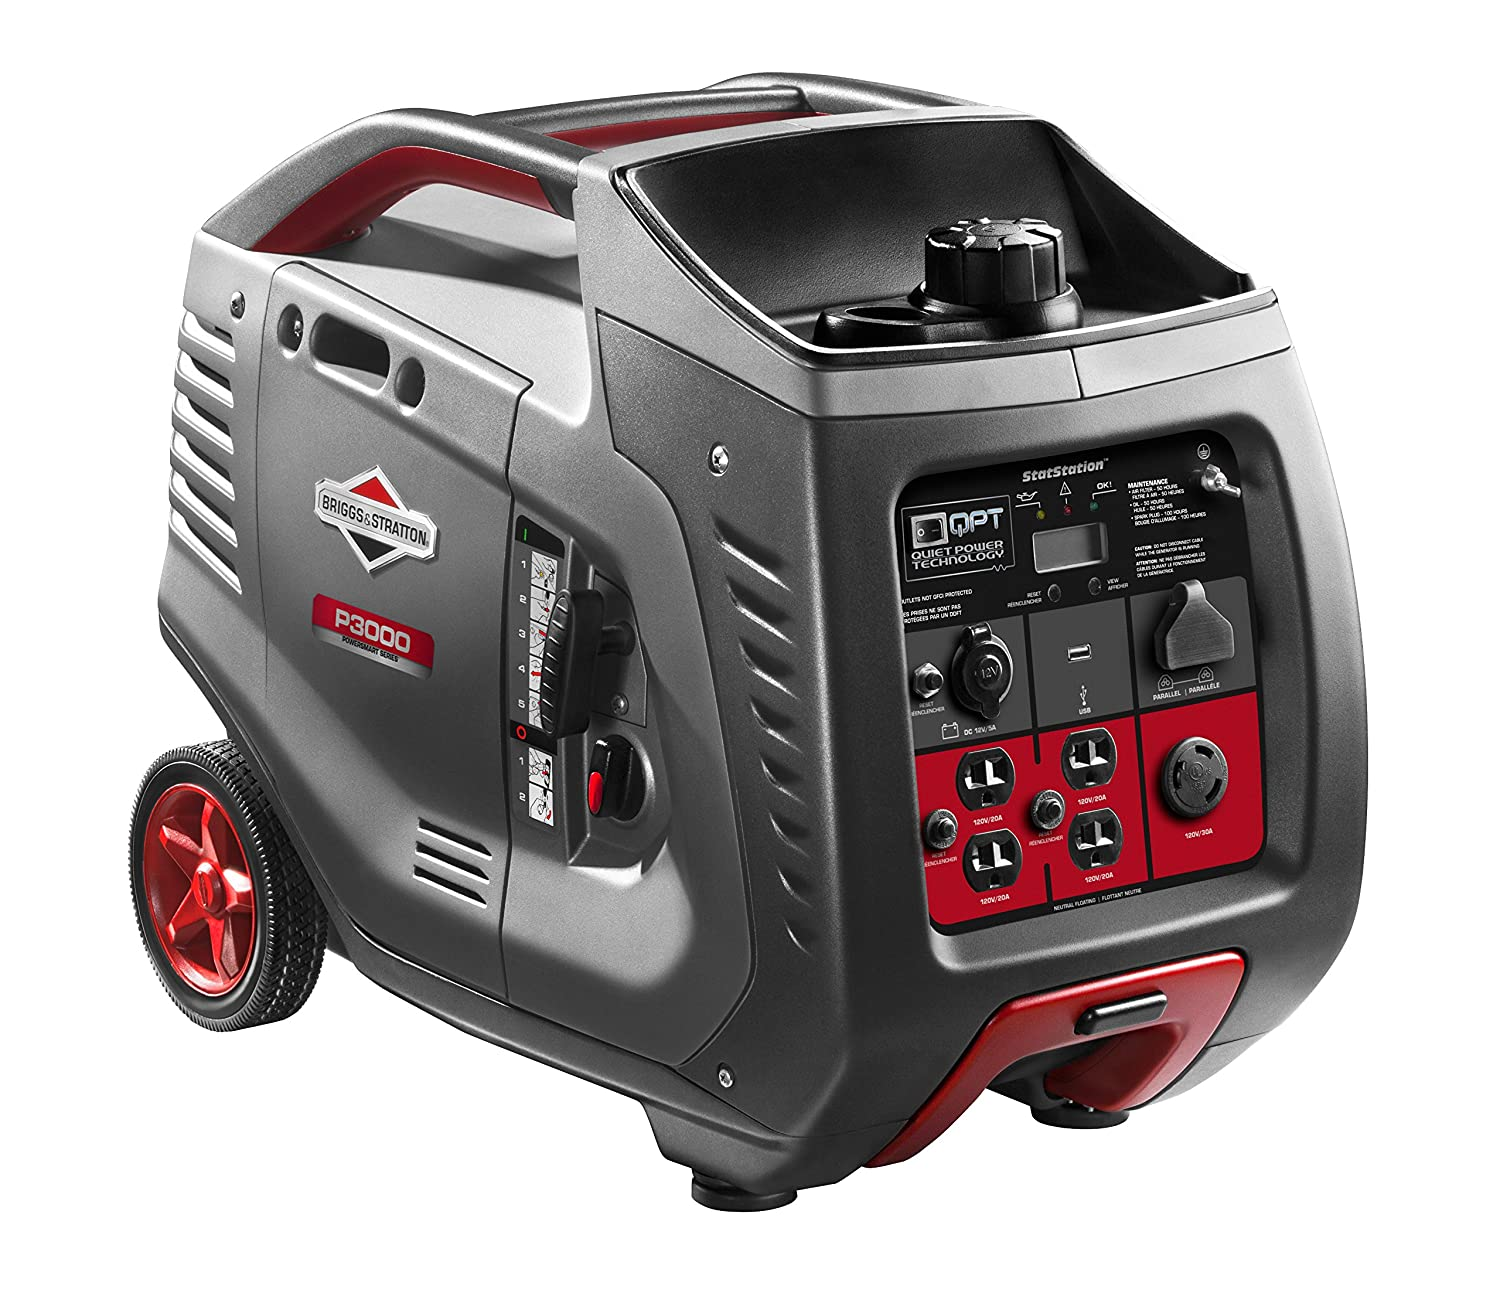 Amazon.com : Briggs & Stratton 30545 P3000 PowerSmart Series Portable  3000-Watt Inverter Generator with (4) 120-Volt AC Outlets and (1) 12-Volt  DC Outlet ...